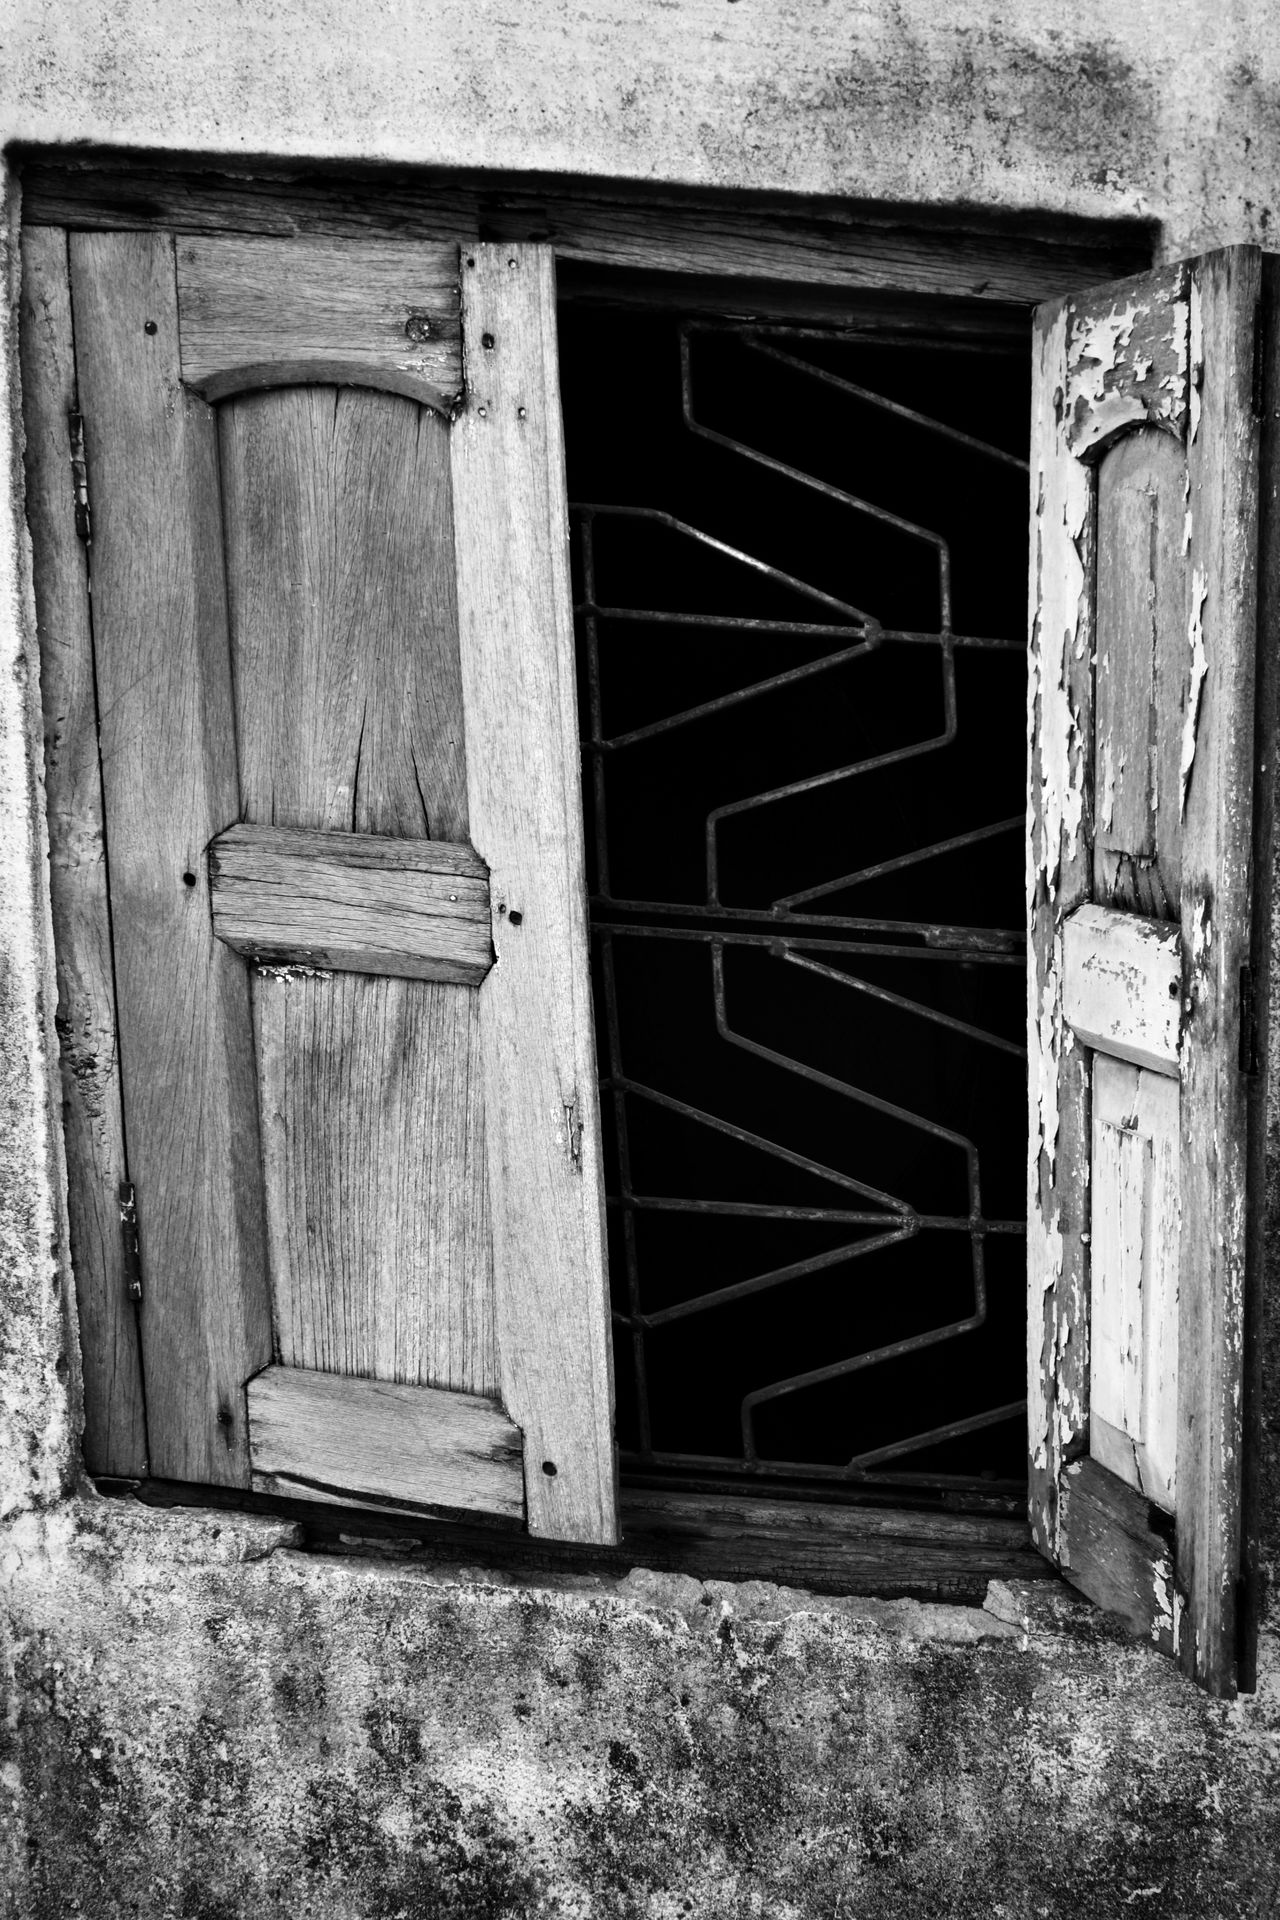 Built Structure Architecture House Building Exterior Door Outdoors No People Day Ajar Travel Destinations Transportation Real People Steps And Staircases Window Arts Culture And Entertainment Horizontal One Person Traditional Clothing Architecture Architecture And Art Full Length Tranquility The Way Forward Fresco Land Vehicle